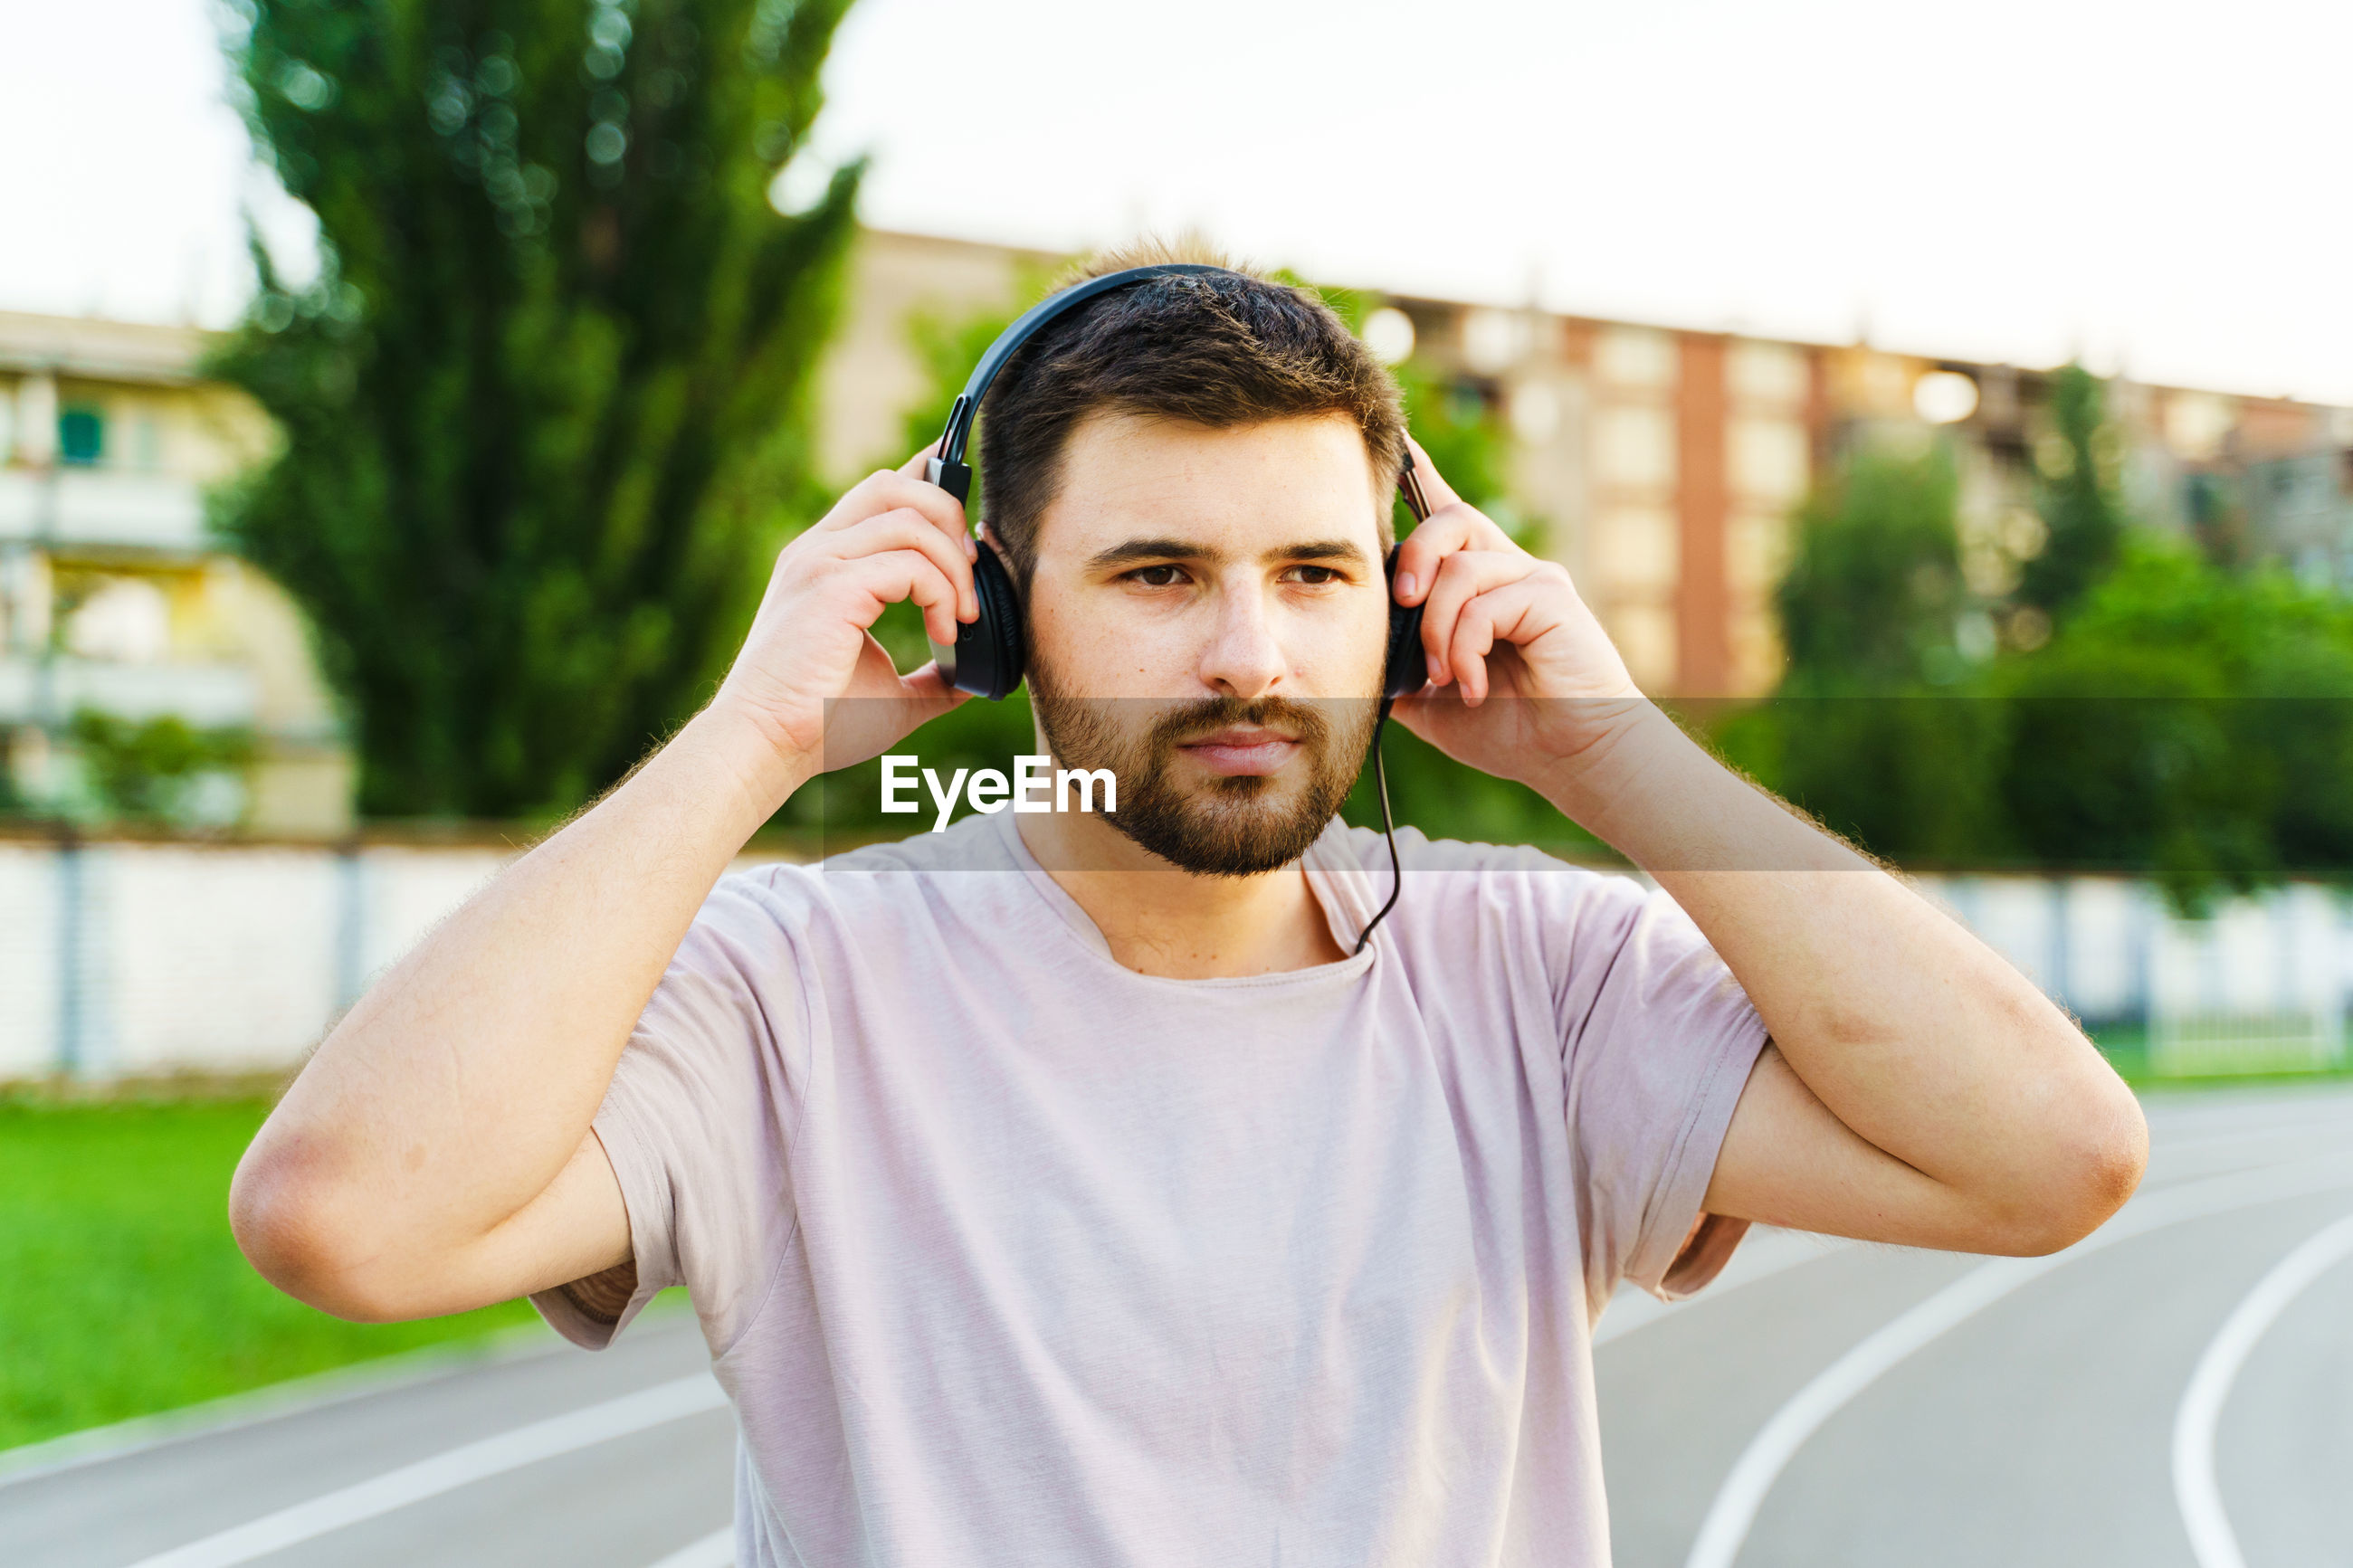 Man listening music over headphones while standing outdoors